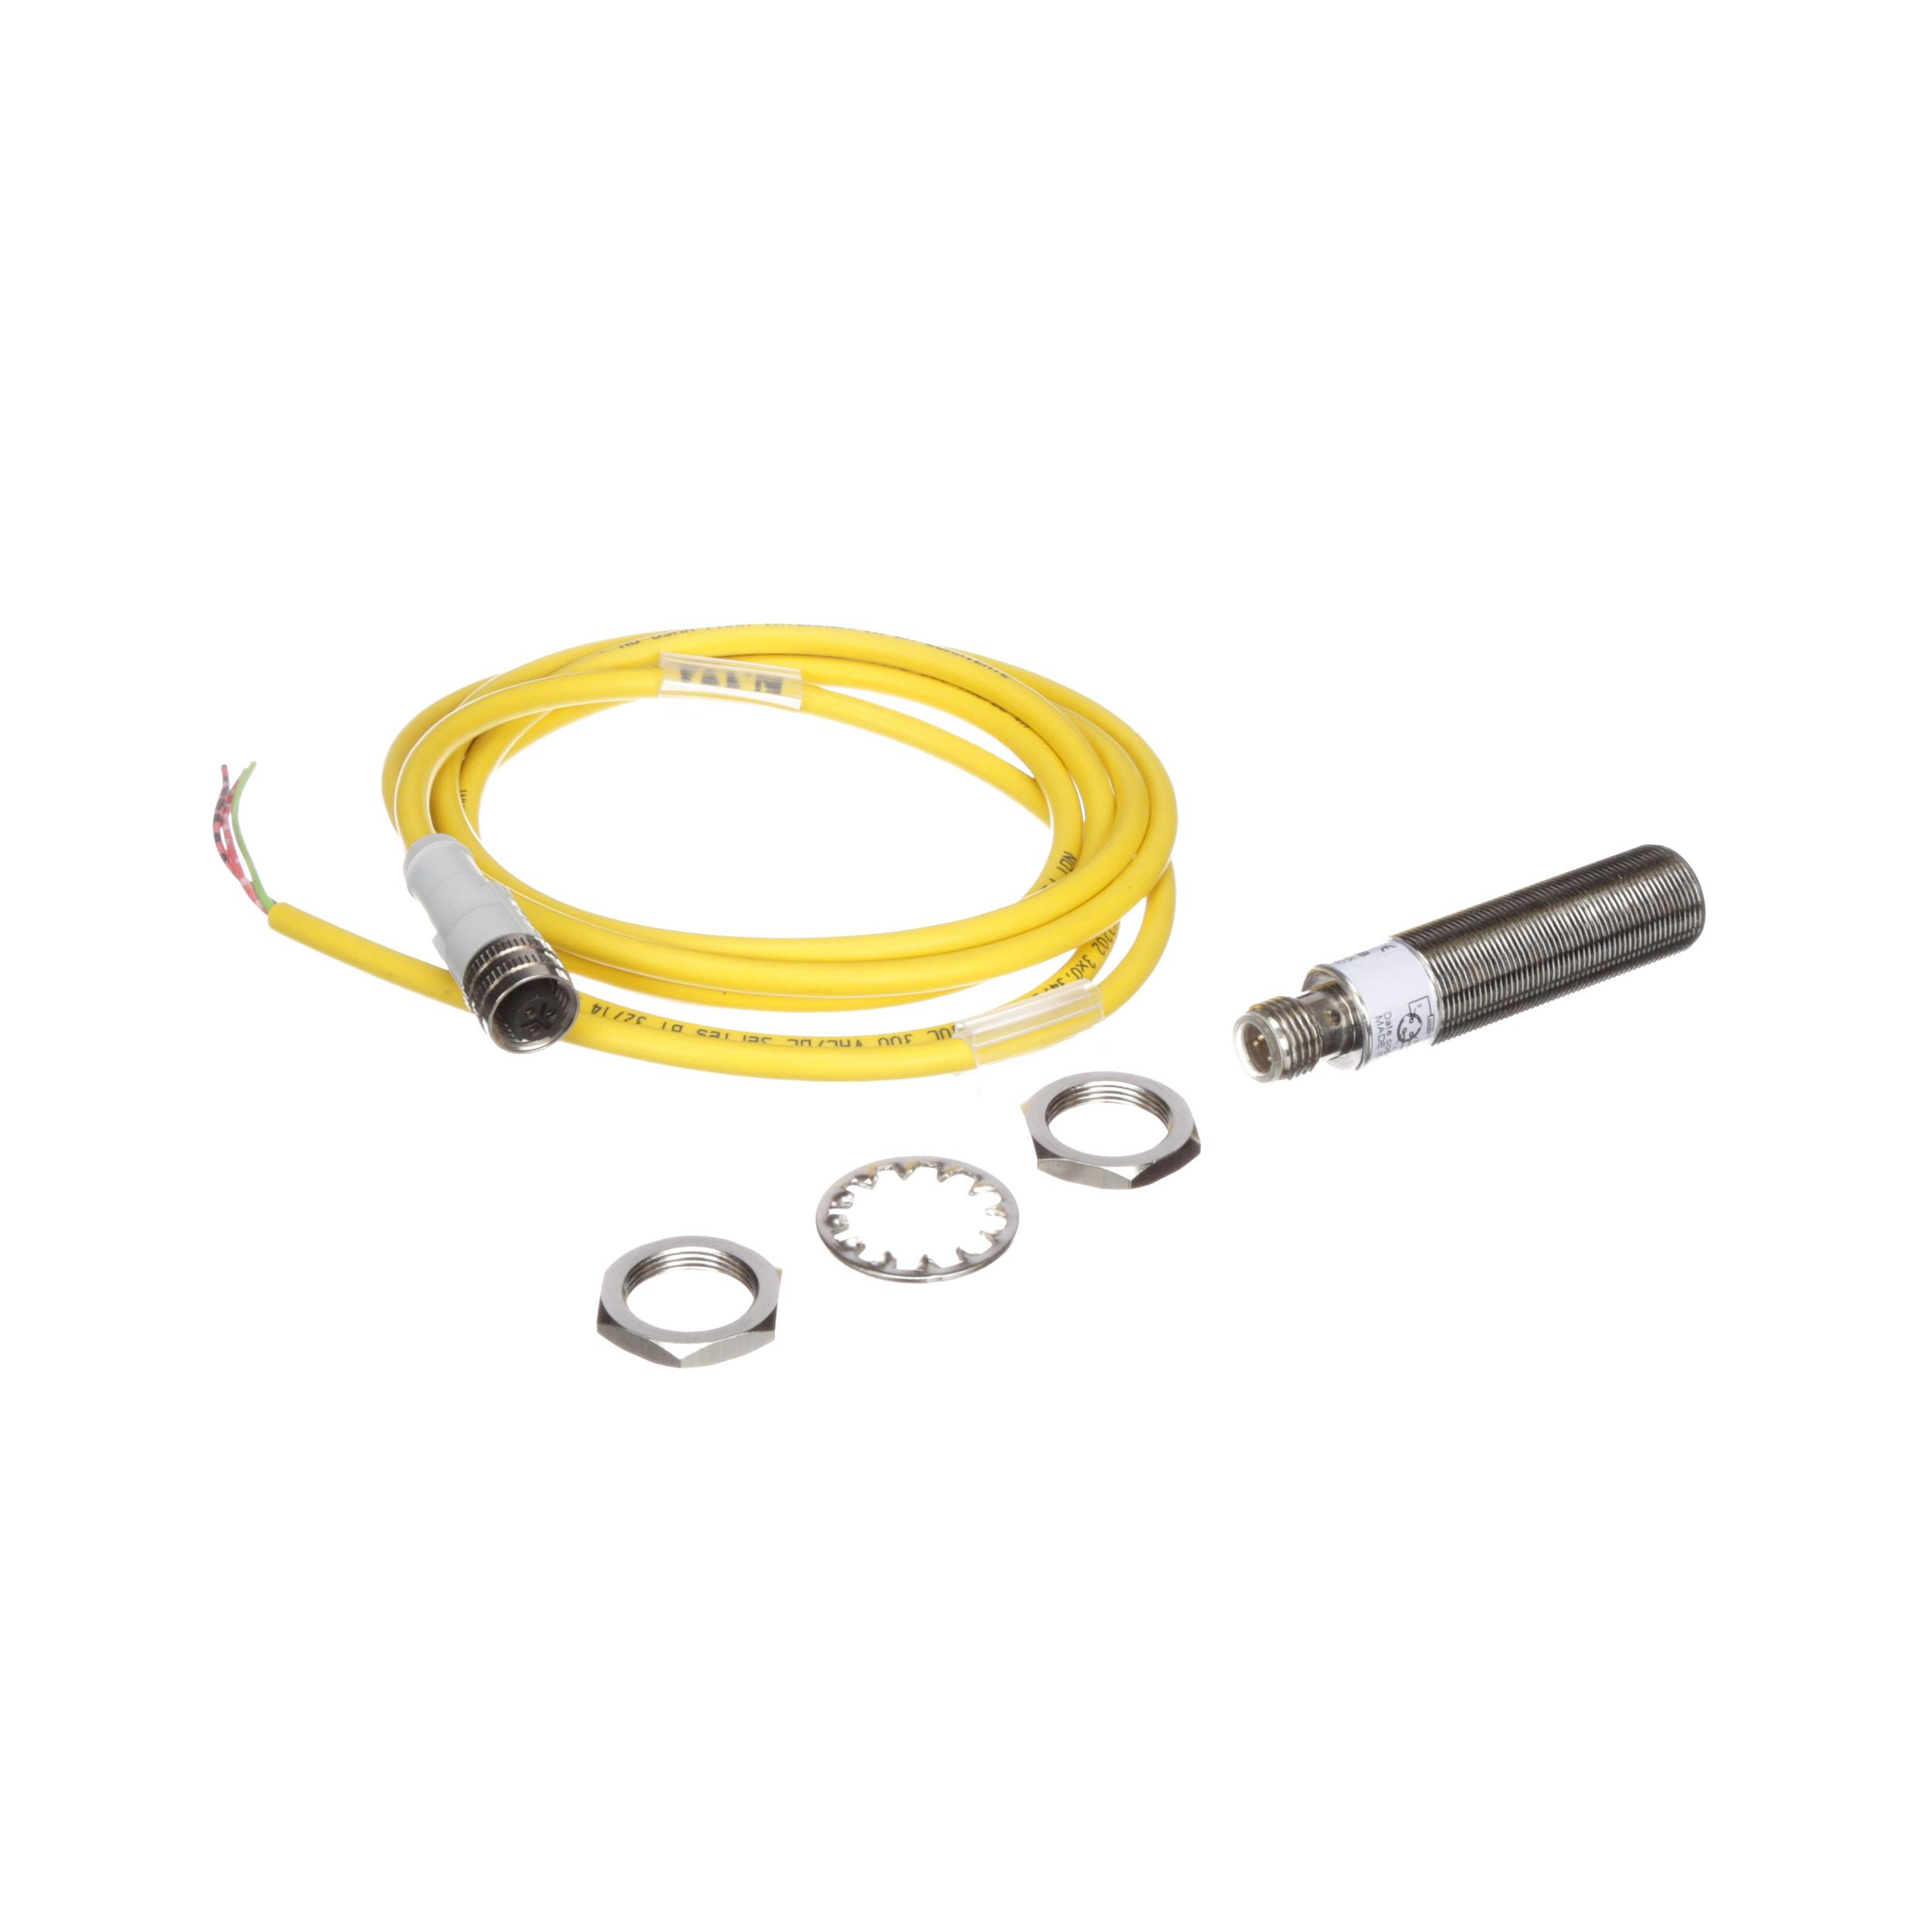 BE & SCO PROXIMITY SWITCH